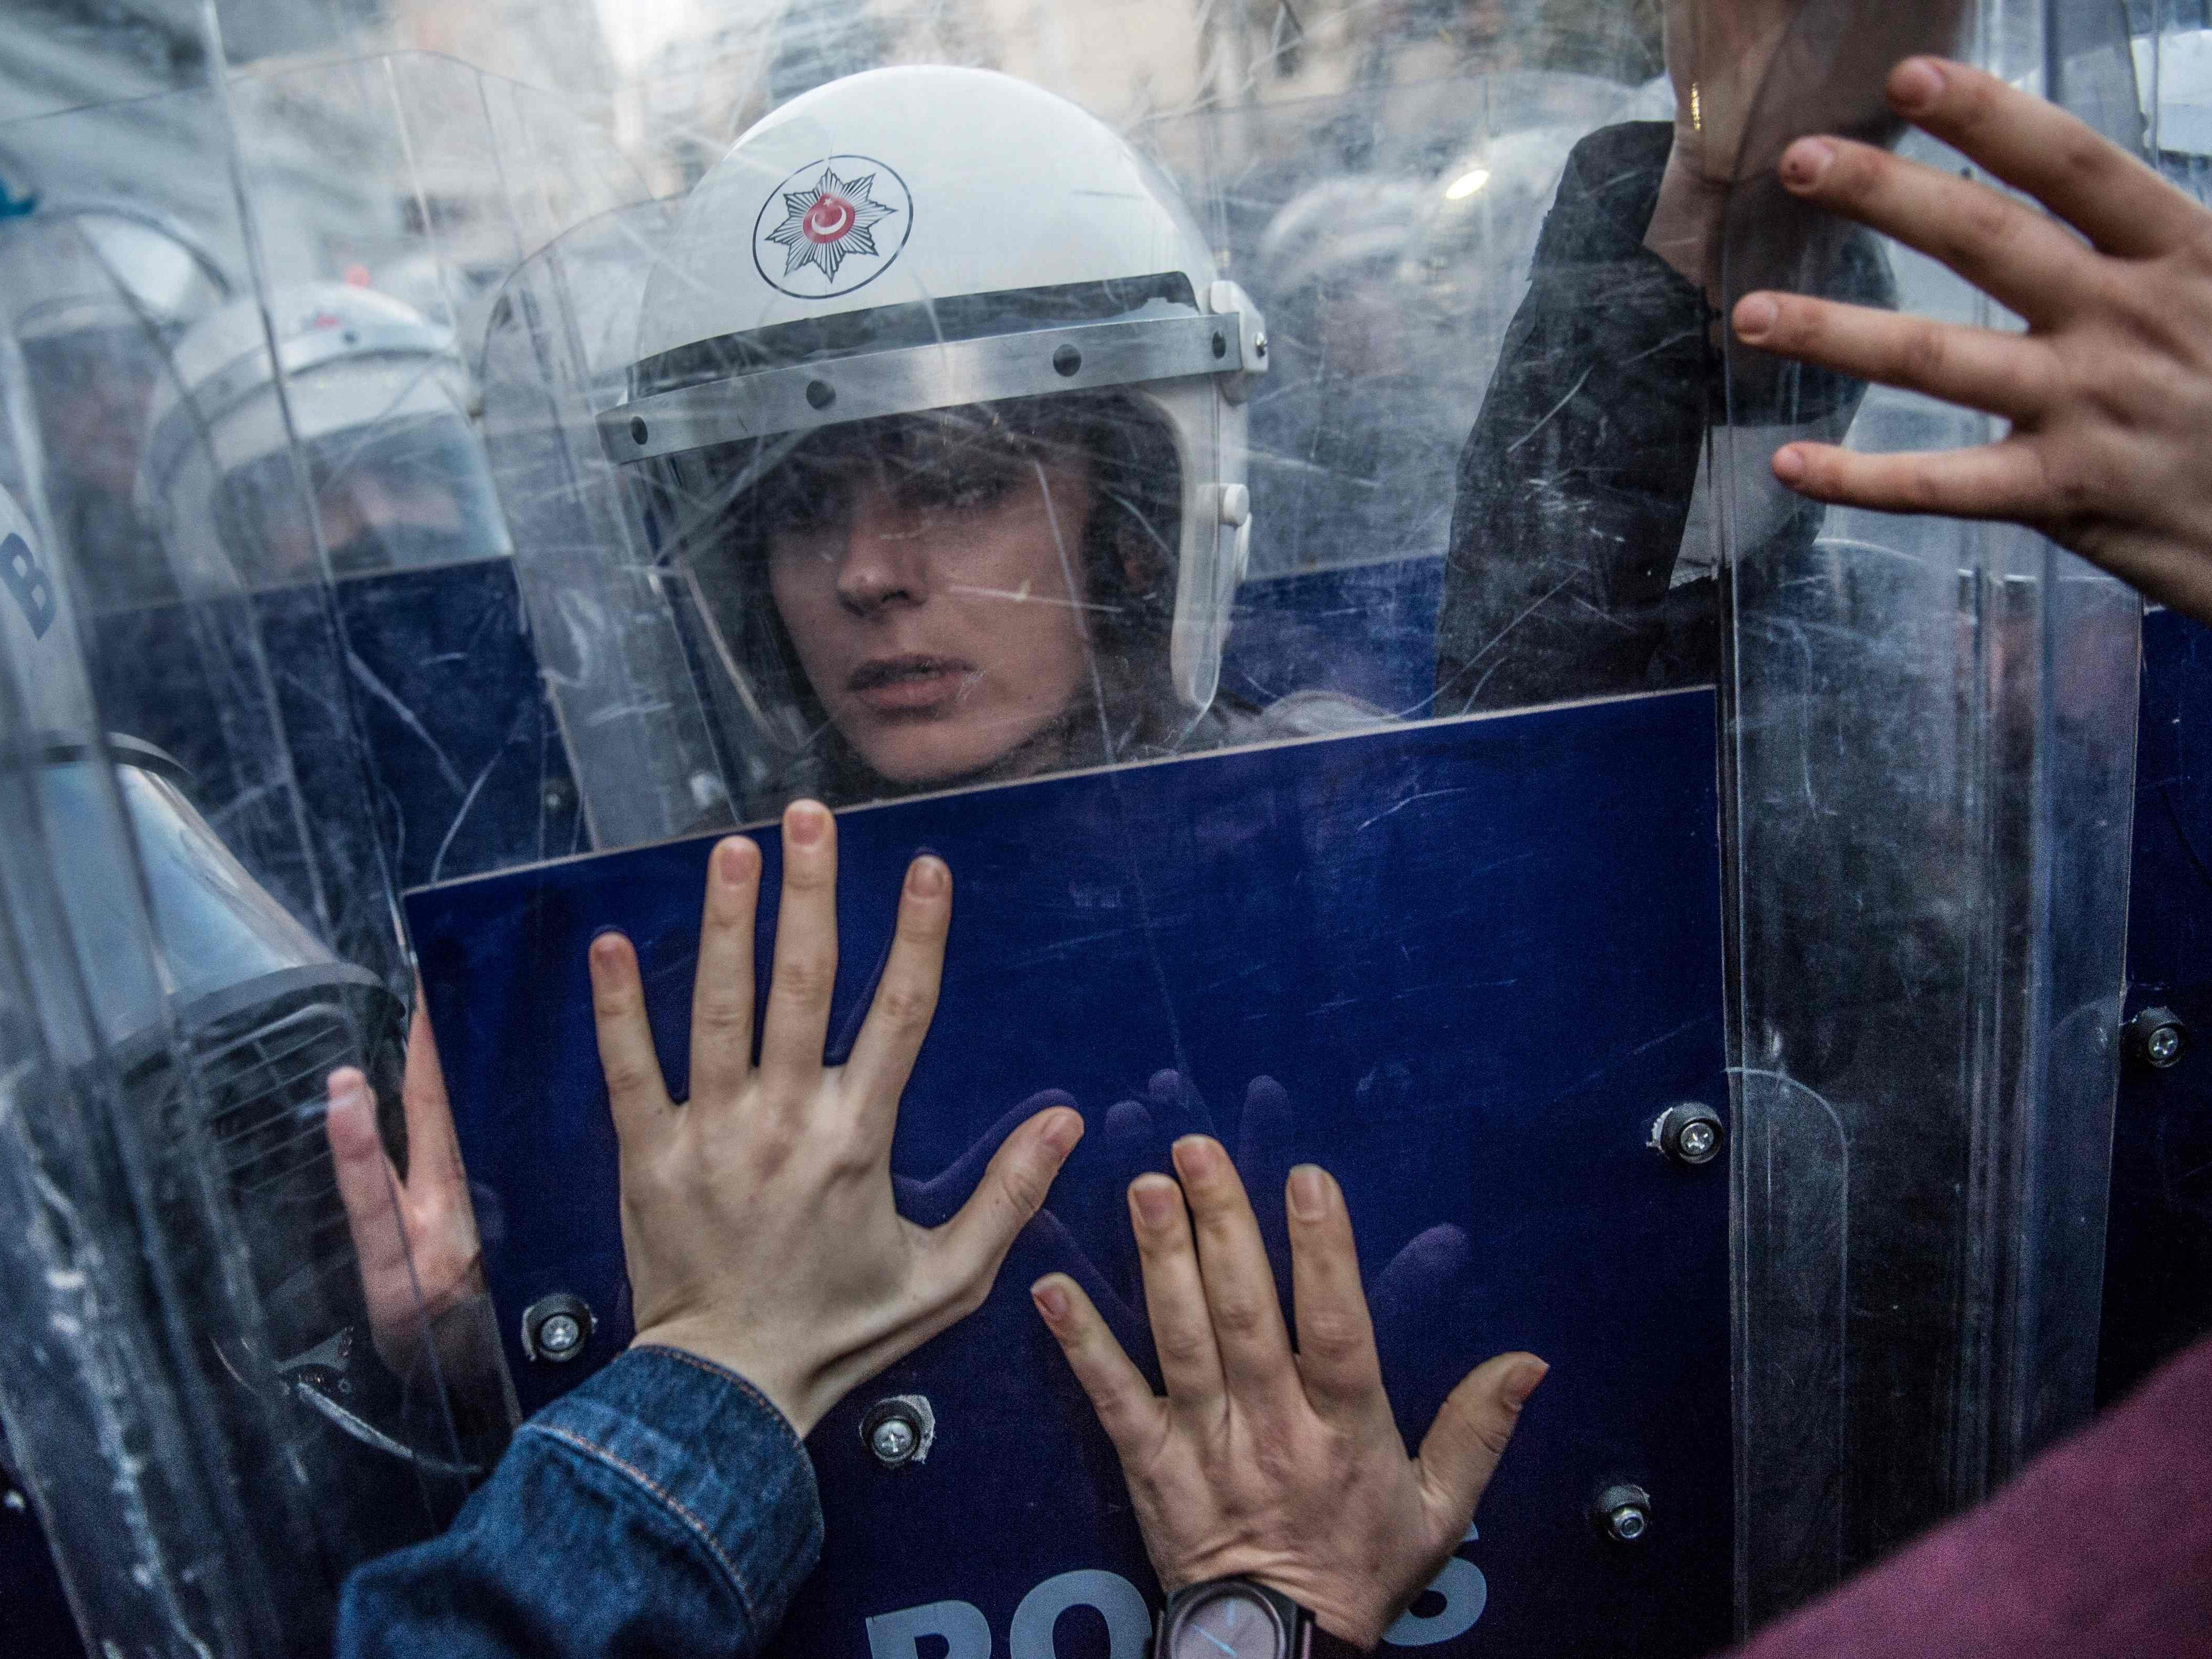 A Turkish female riot police officer reacts during clashes with women's rights activists as they try to march to Taksim Square to protest against gender violence in Istanbul, on November 25, 2018, on the International Day for the Elimination of Violence against Women.